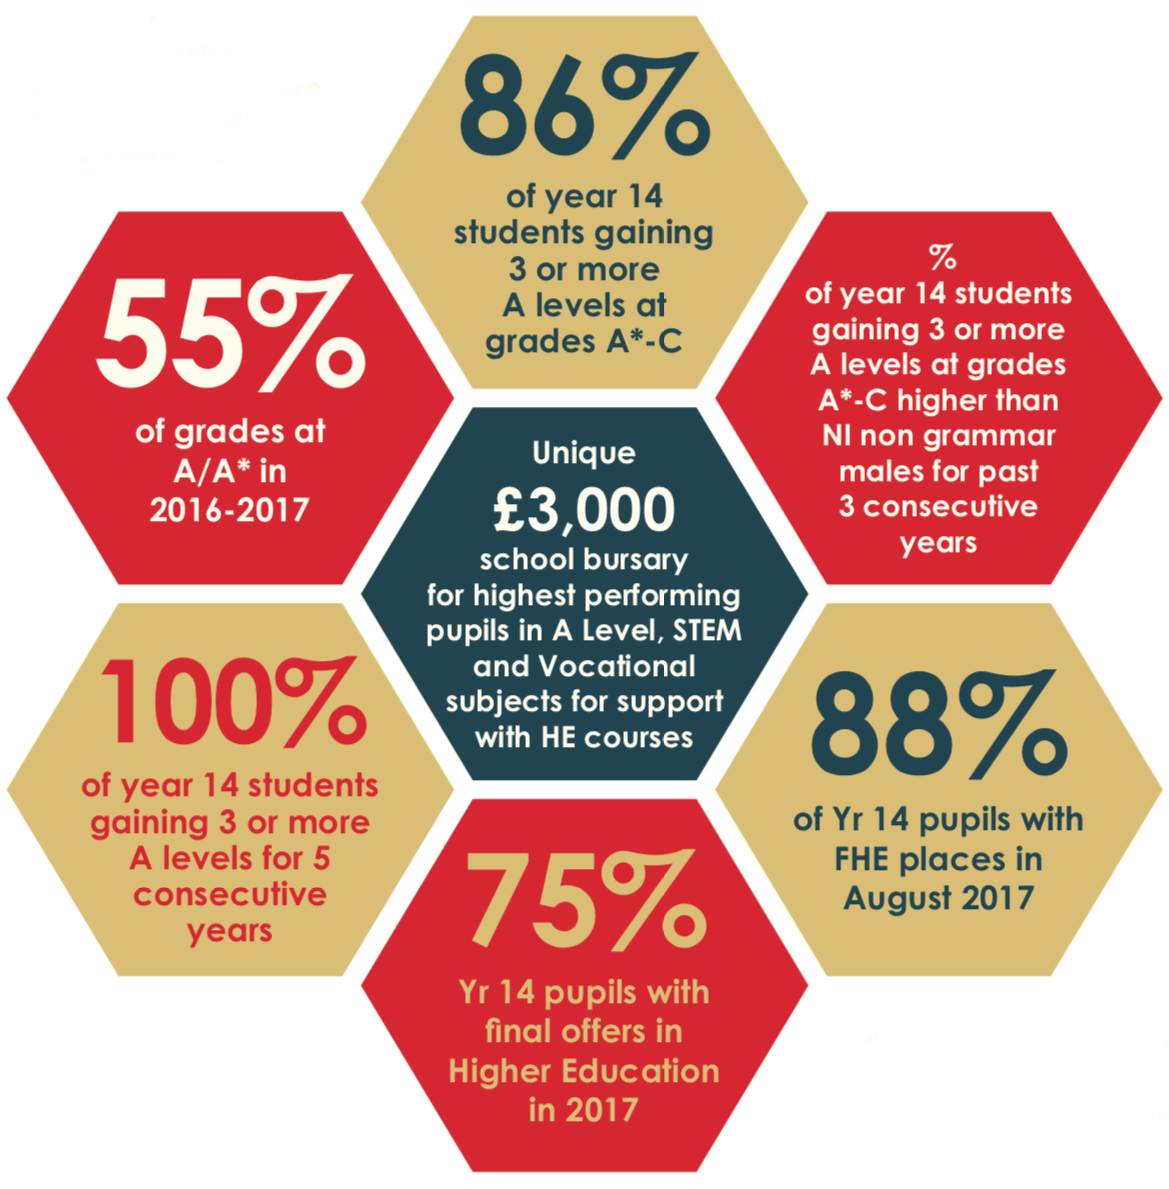 Sixth Form Statistics - 100% of year 14 students gaining 3 or more A levels